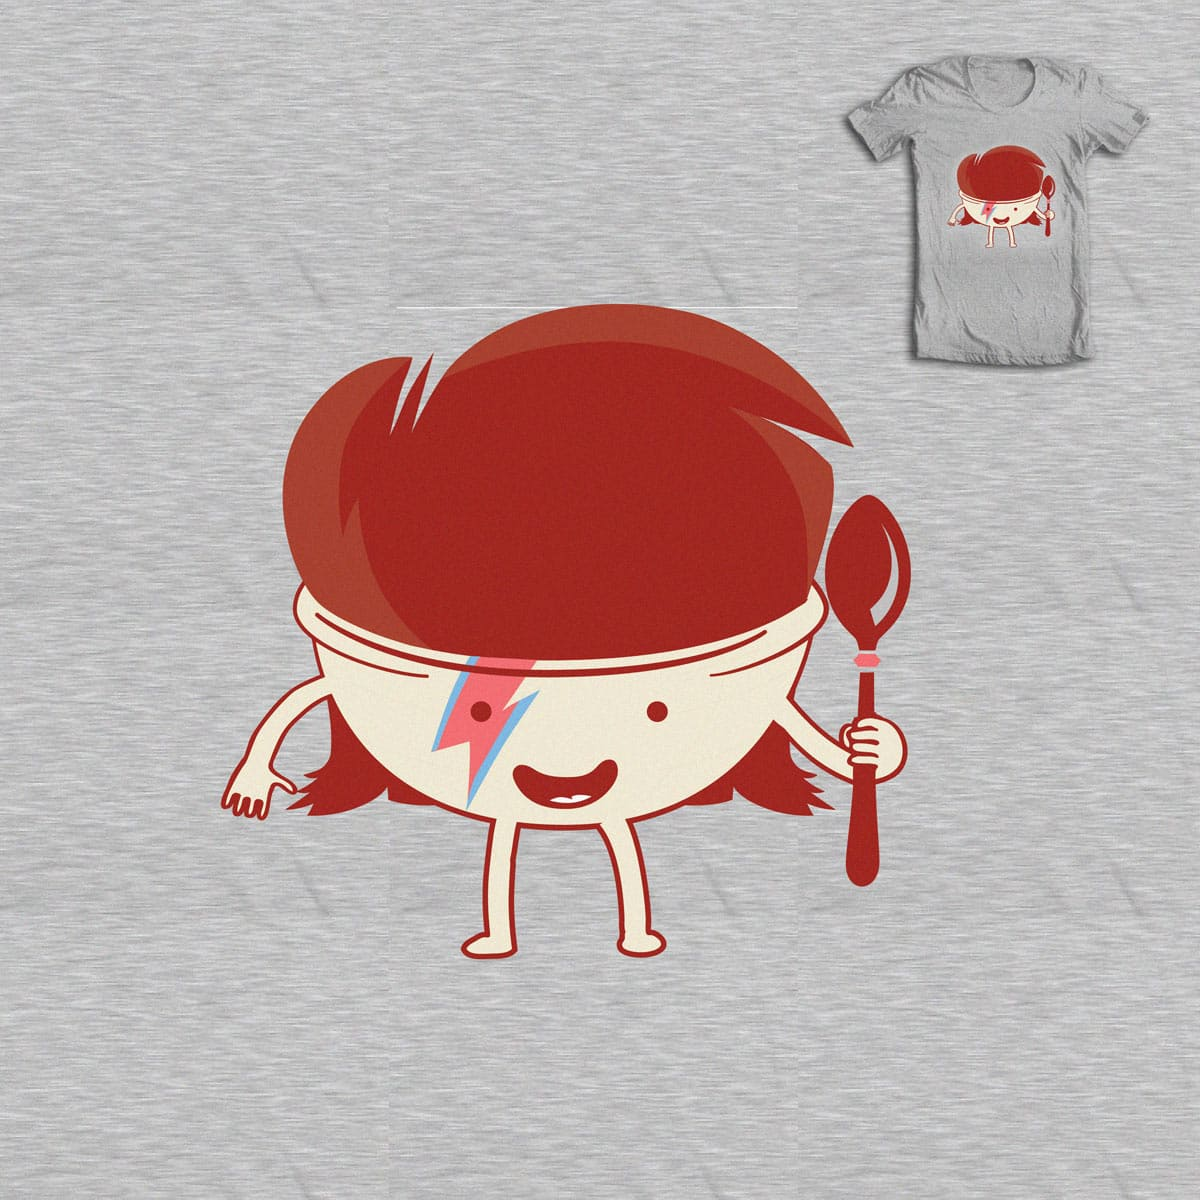 This is David Bowl by Skate_e1 on Threadless